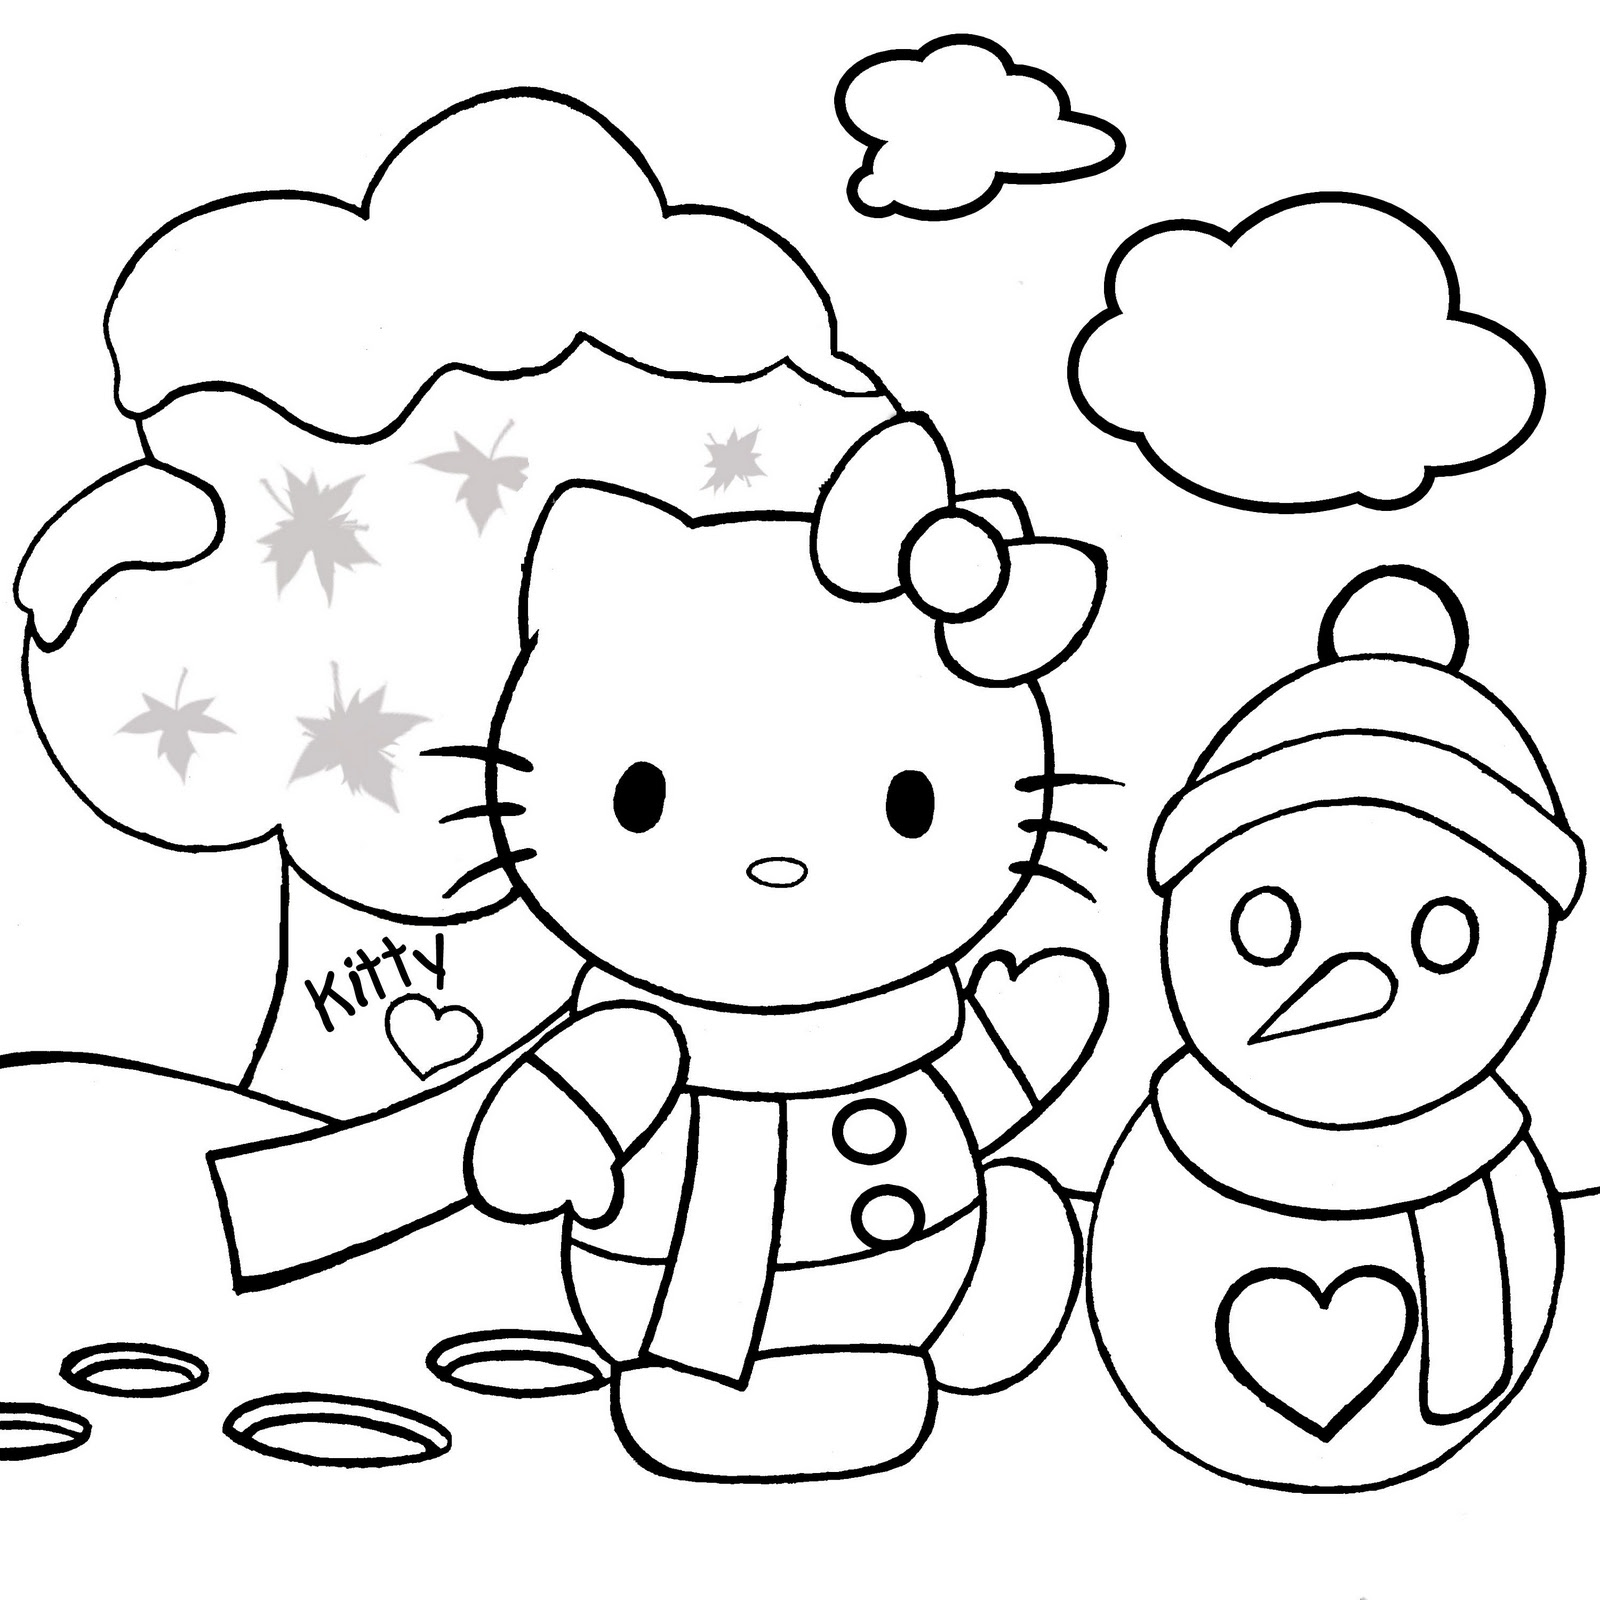 free christmas coloring pages for kids | Hello Kitty Christmas Coloring Pages #1 | Hello Kitty Forever